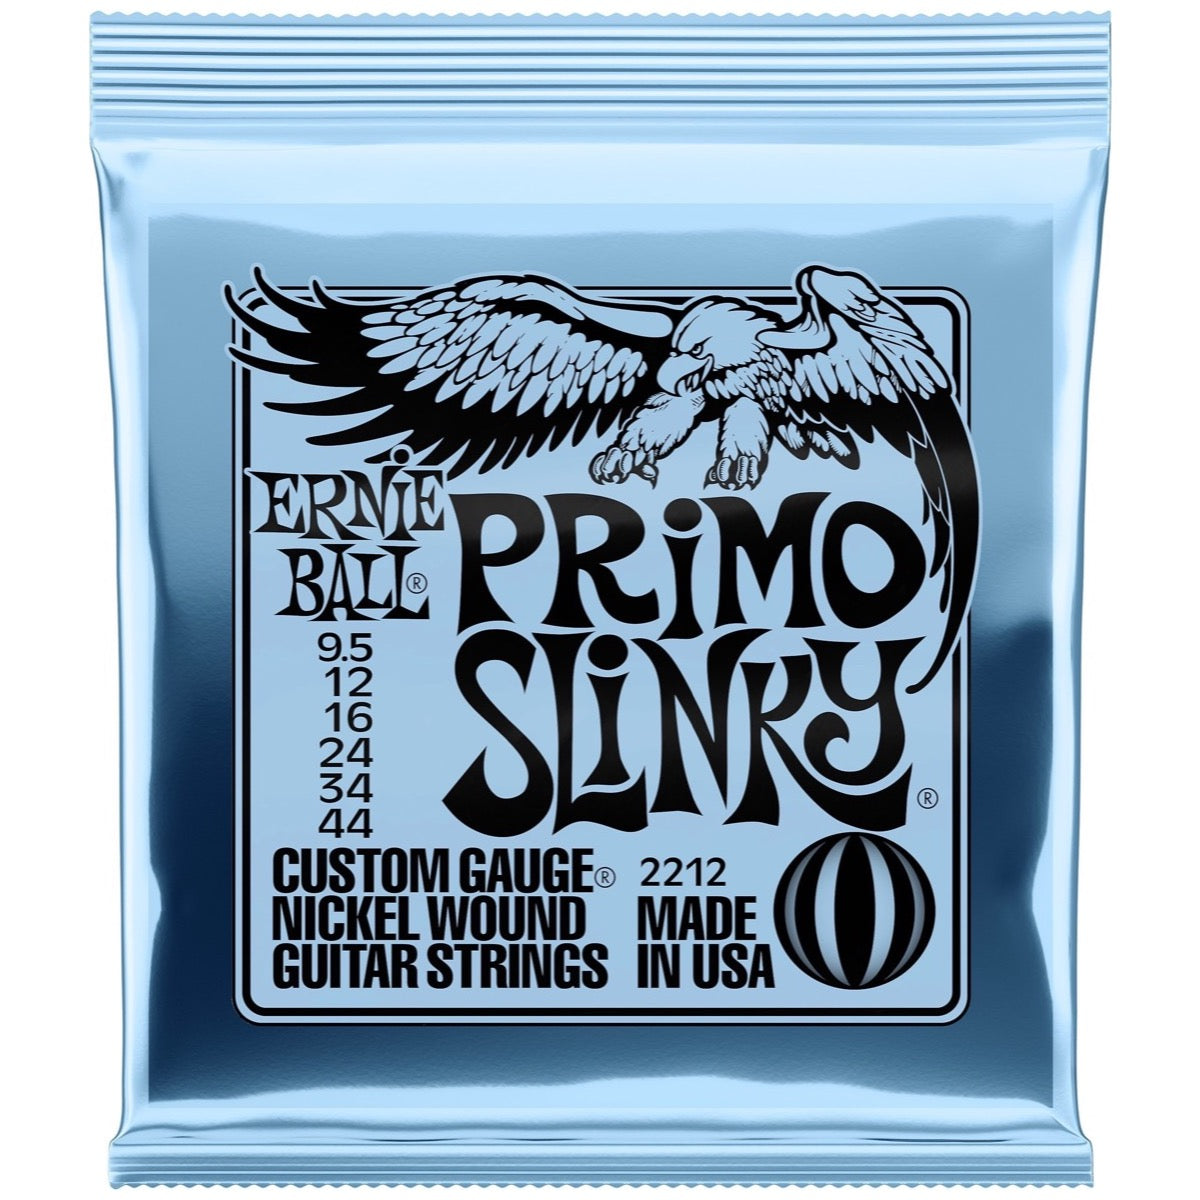 Ernie Ball 2212 Primo Slinky Electric Guitar Strings